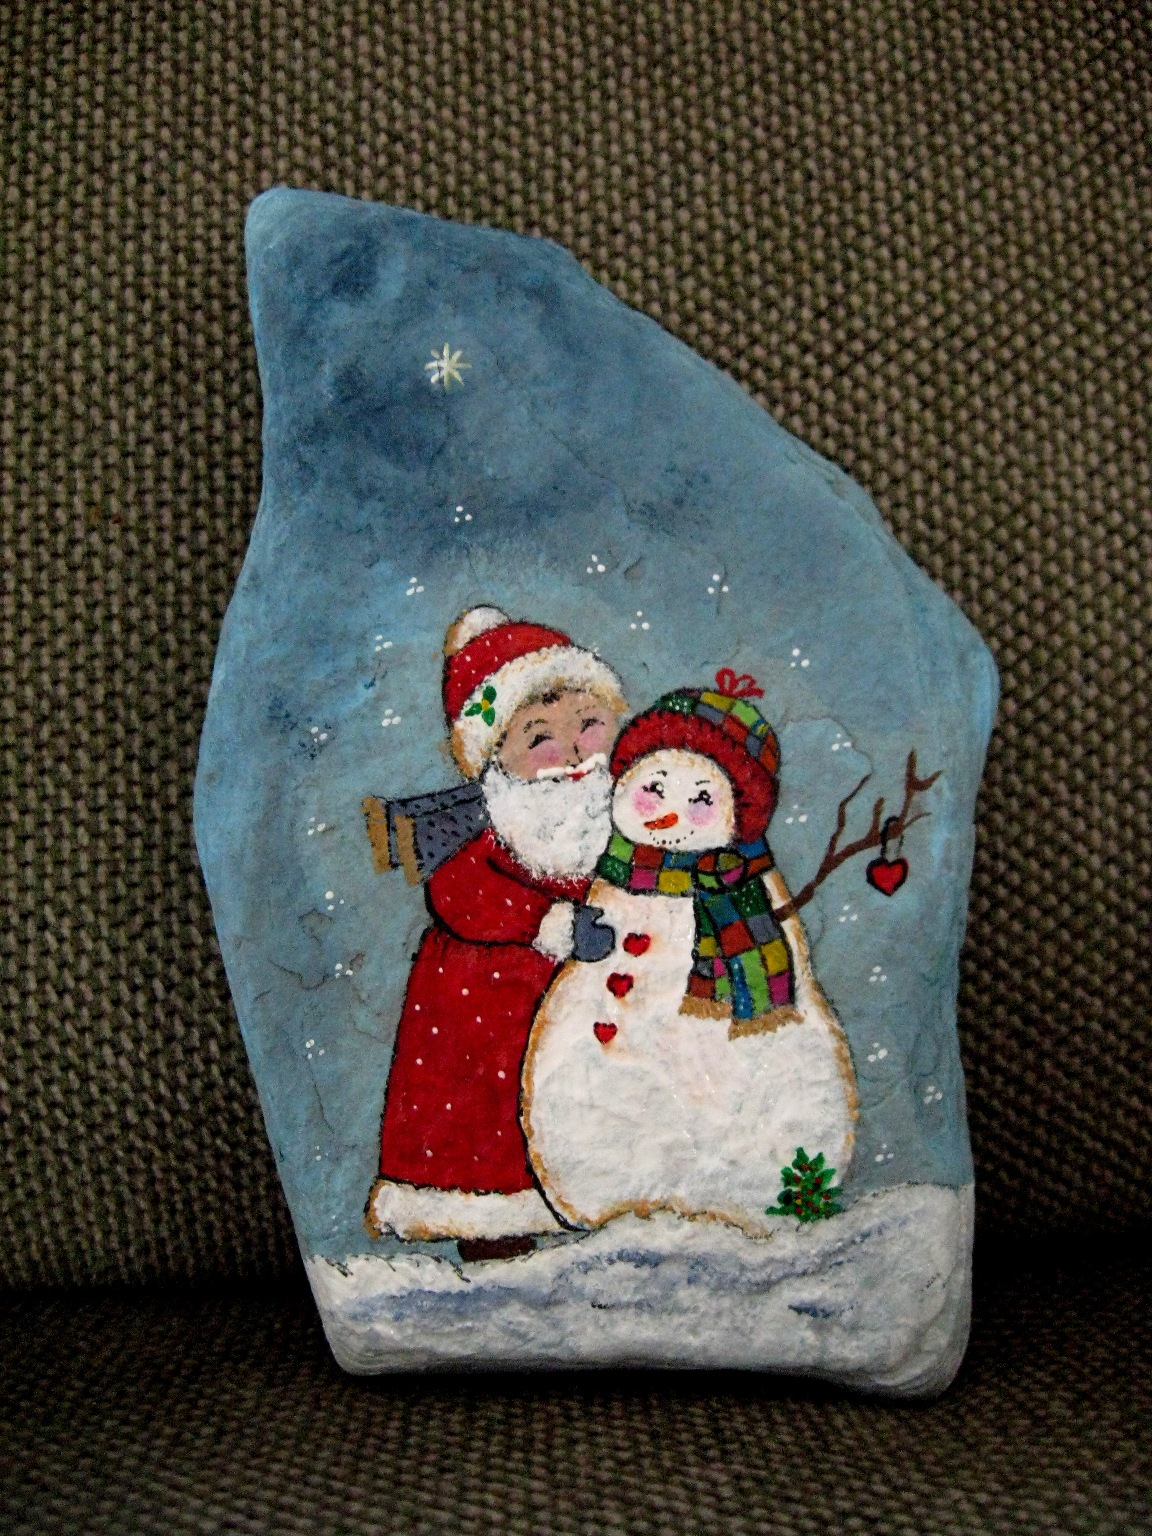 Christmas Rock Painting Images.Prepare For Christmas Rockpainting Exhibit Words And Peace